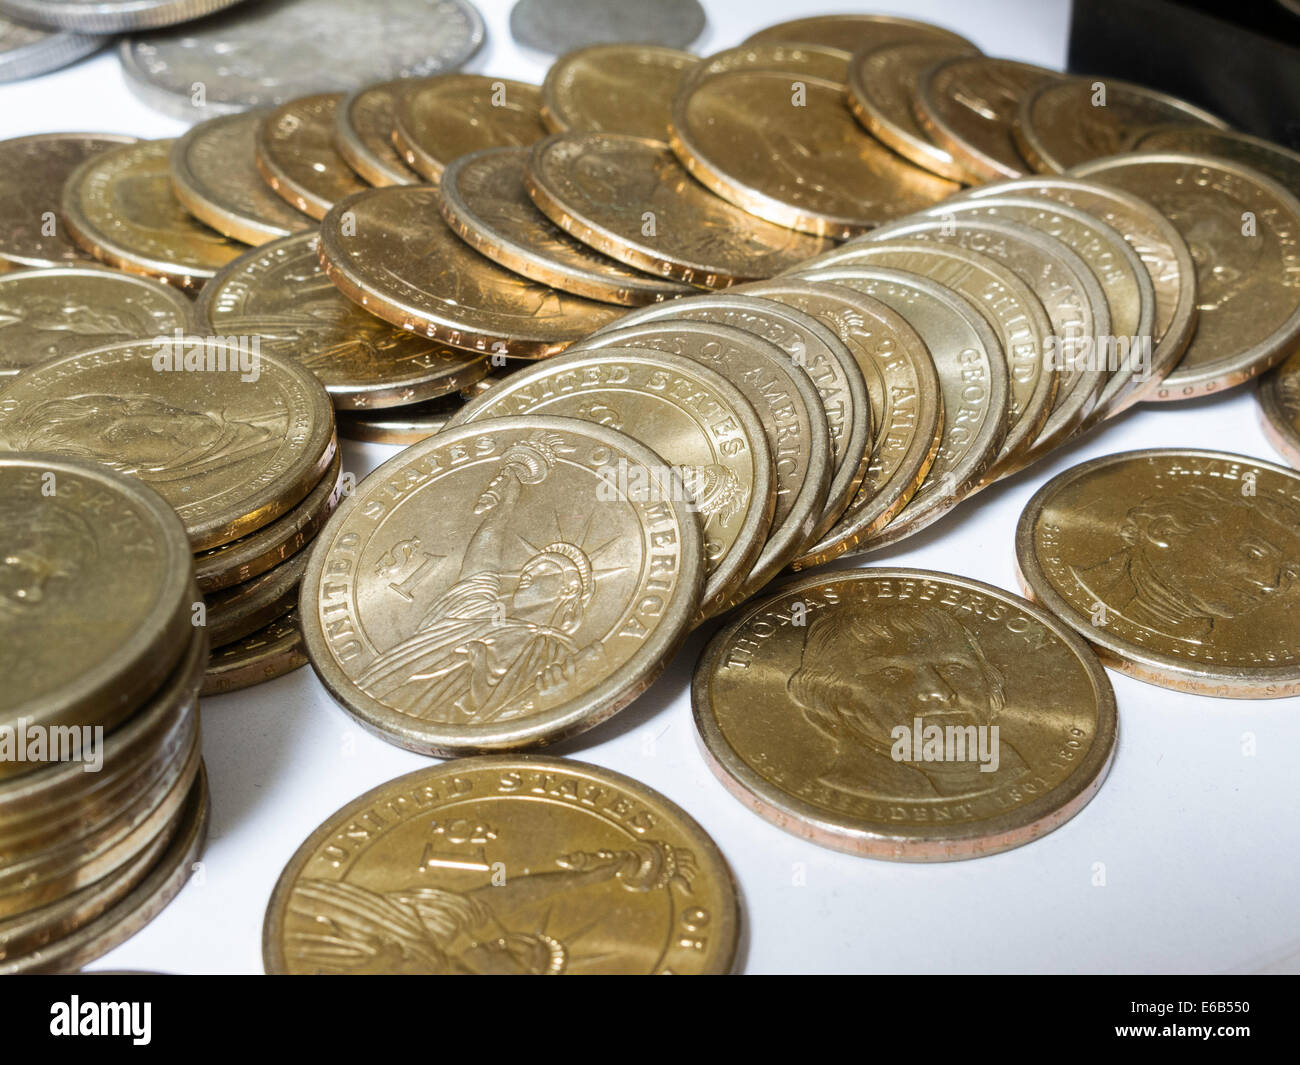 Collectible Coins, USA - Stock Image